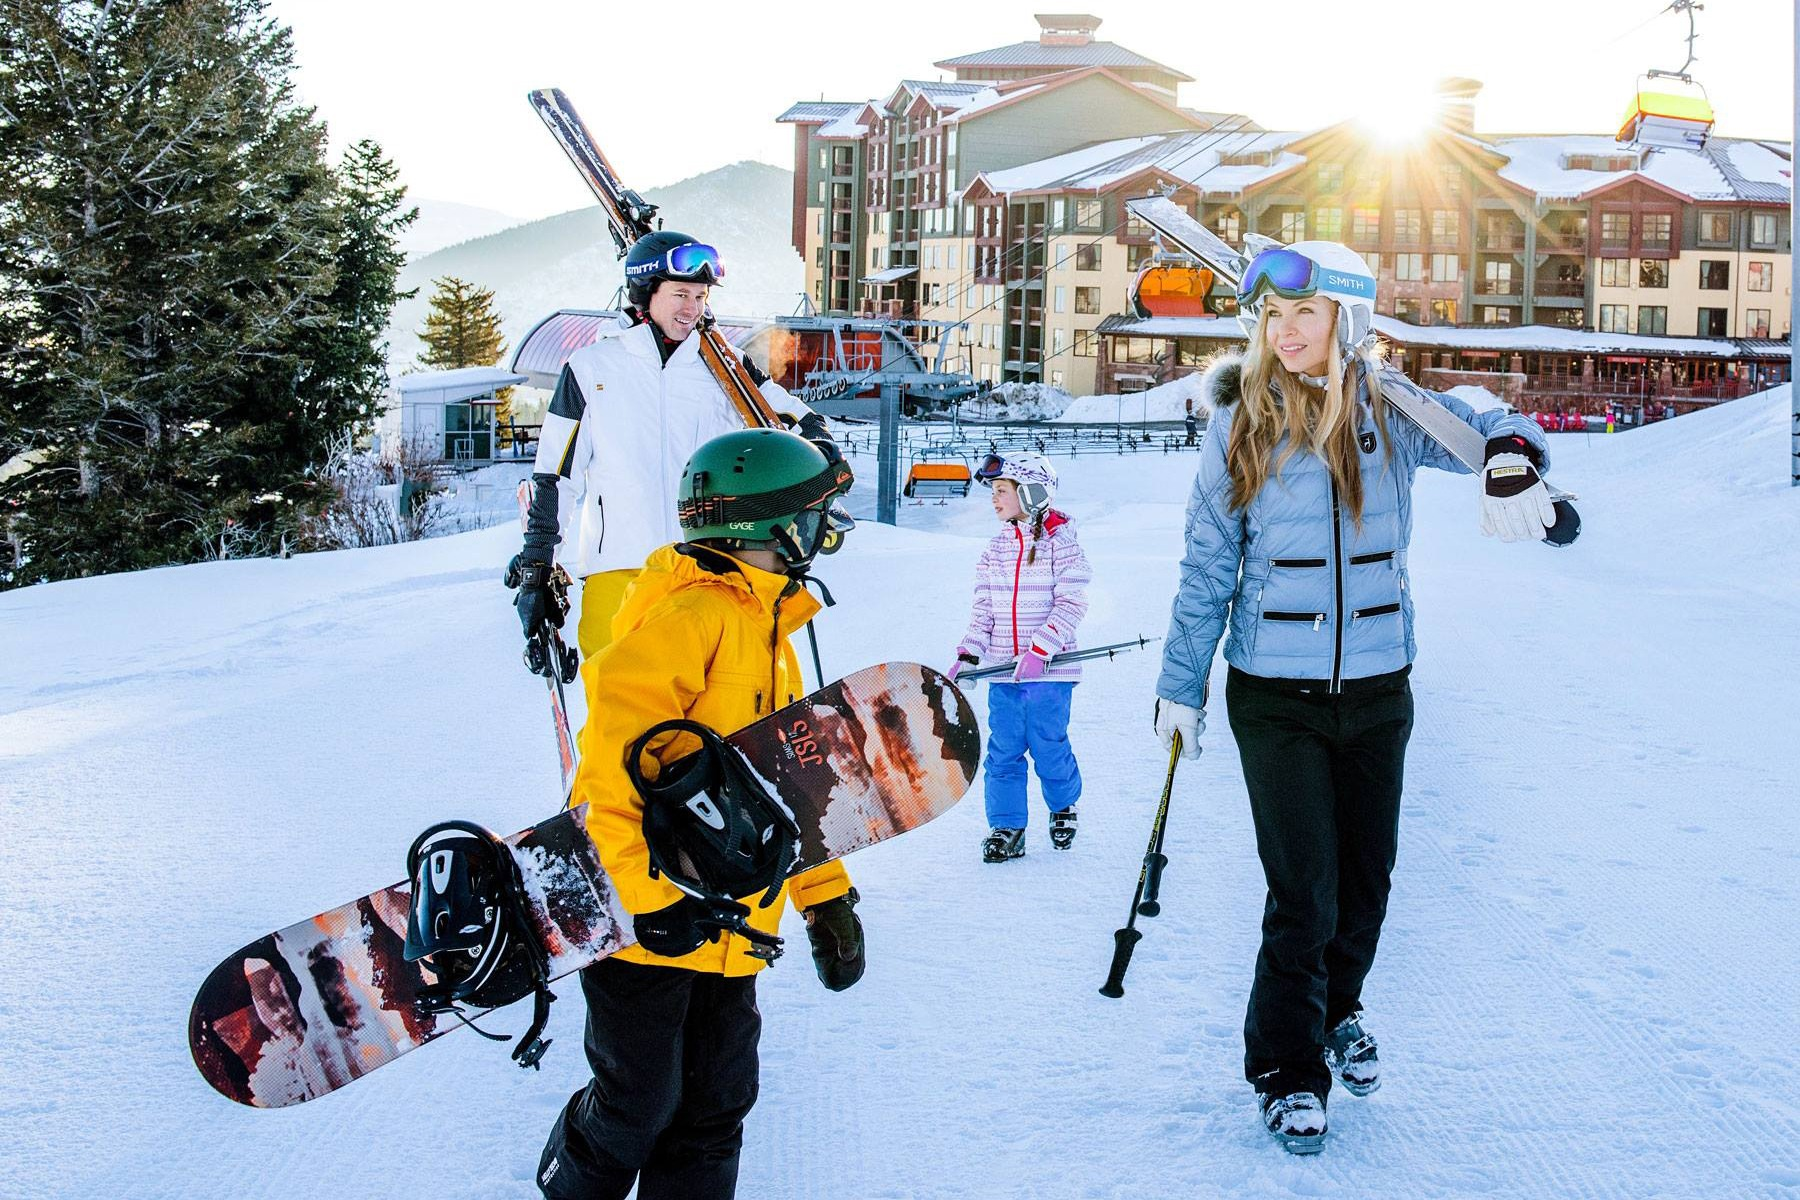 See These Ideas for Winter Family Vacation on a Budget